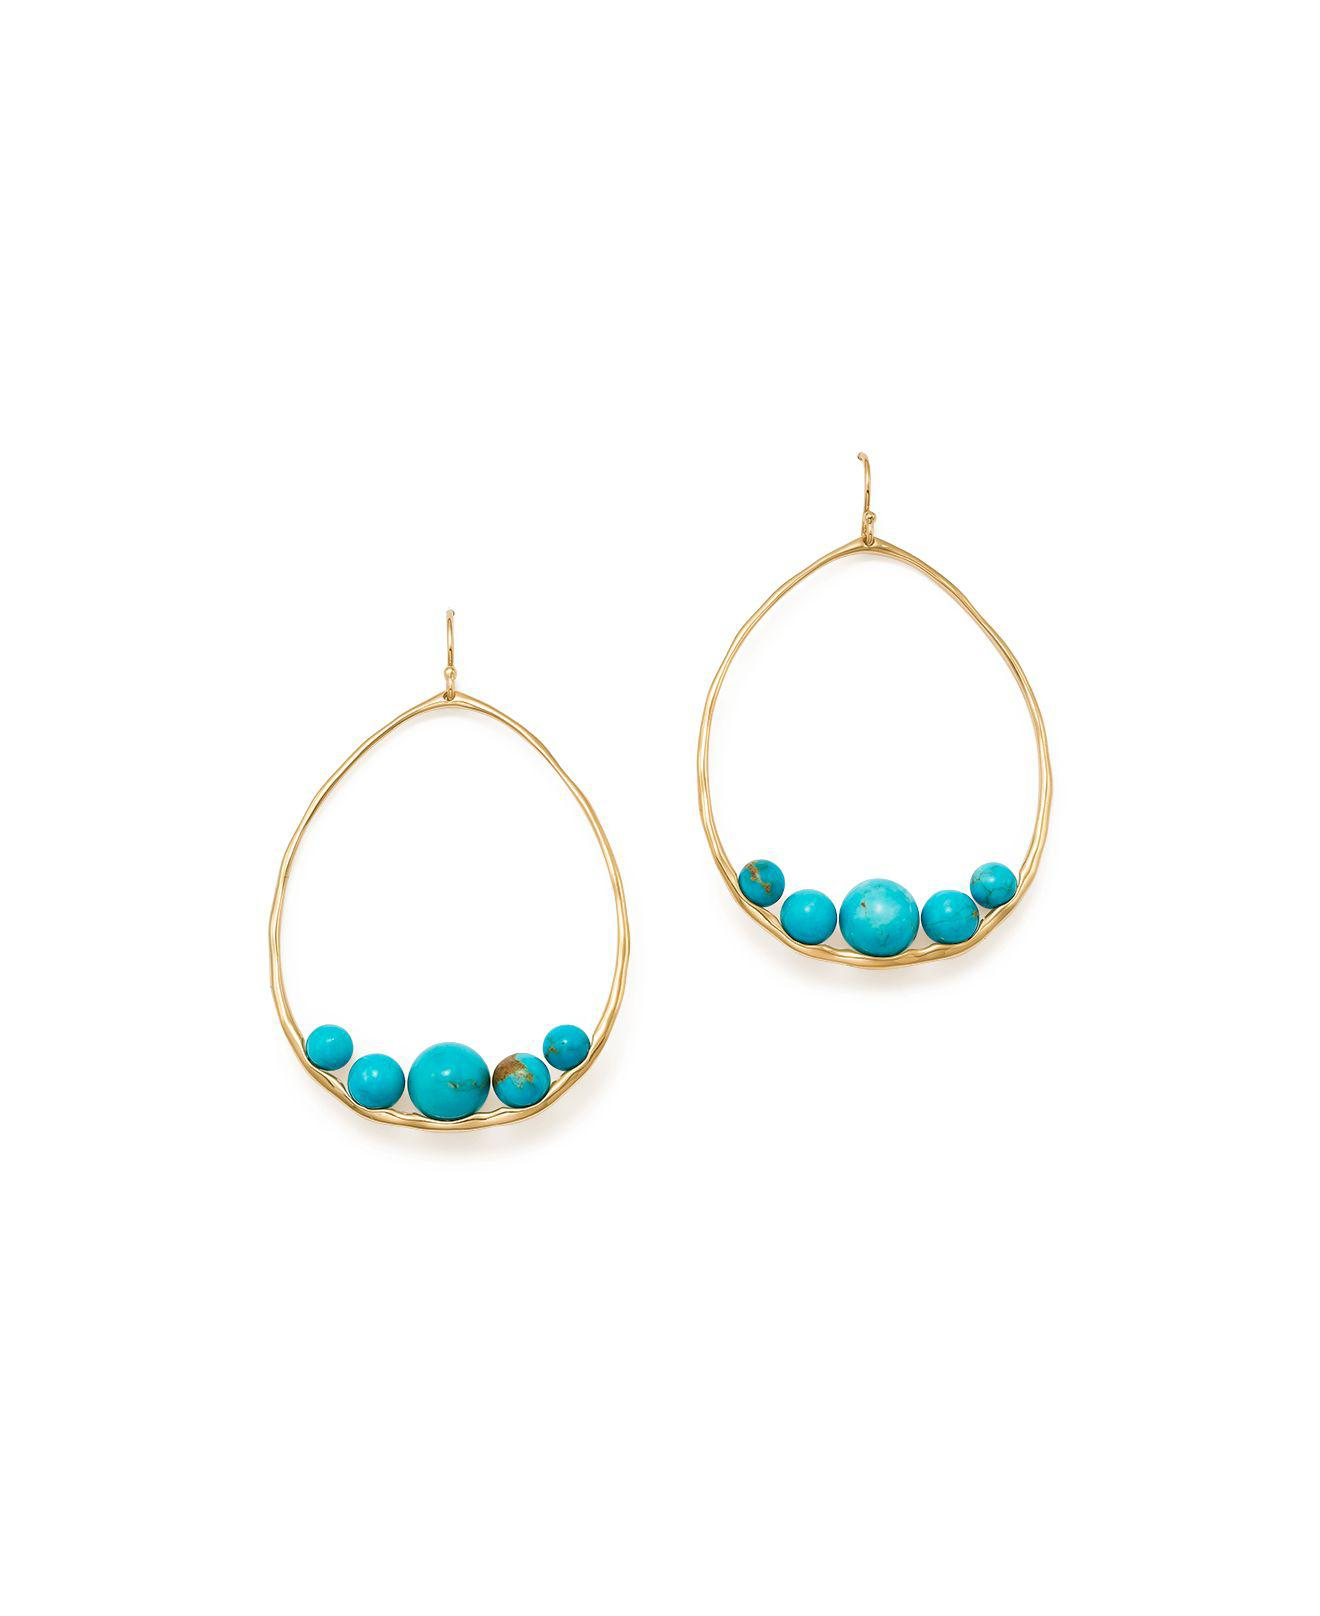 Ippolita 18k Nova Oval Drop Earrings in Turquoise 4OK9MQmH